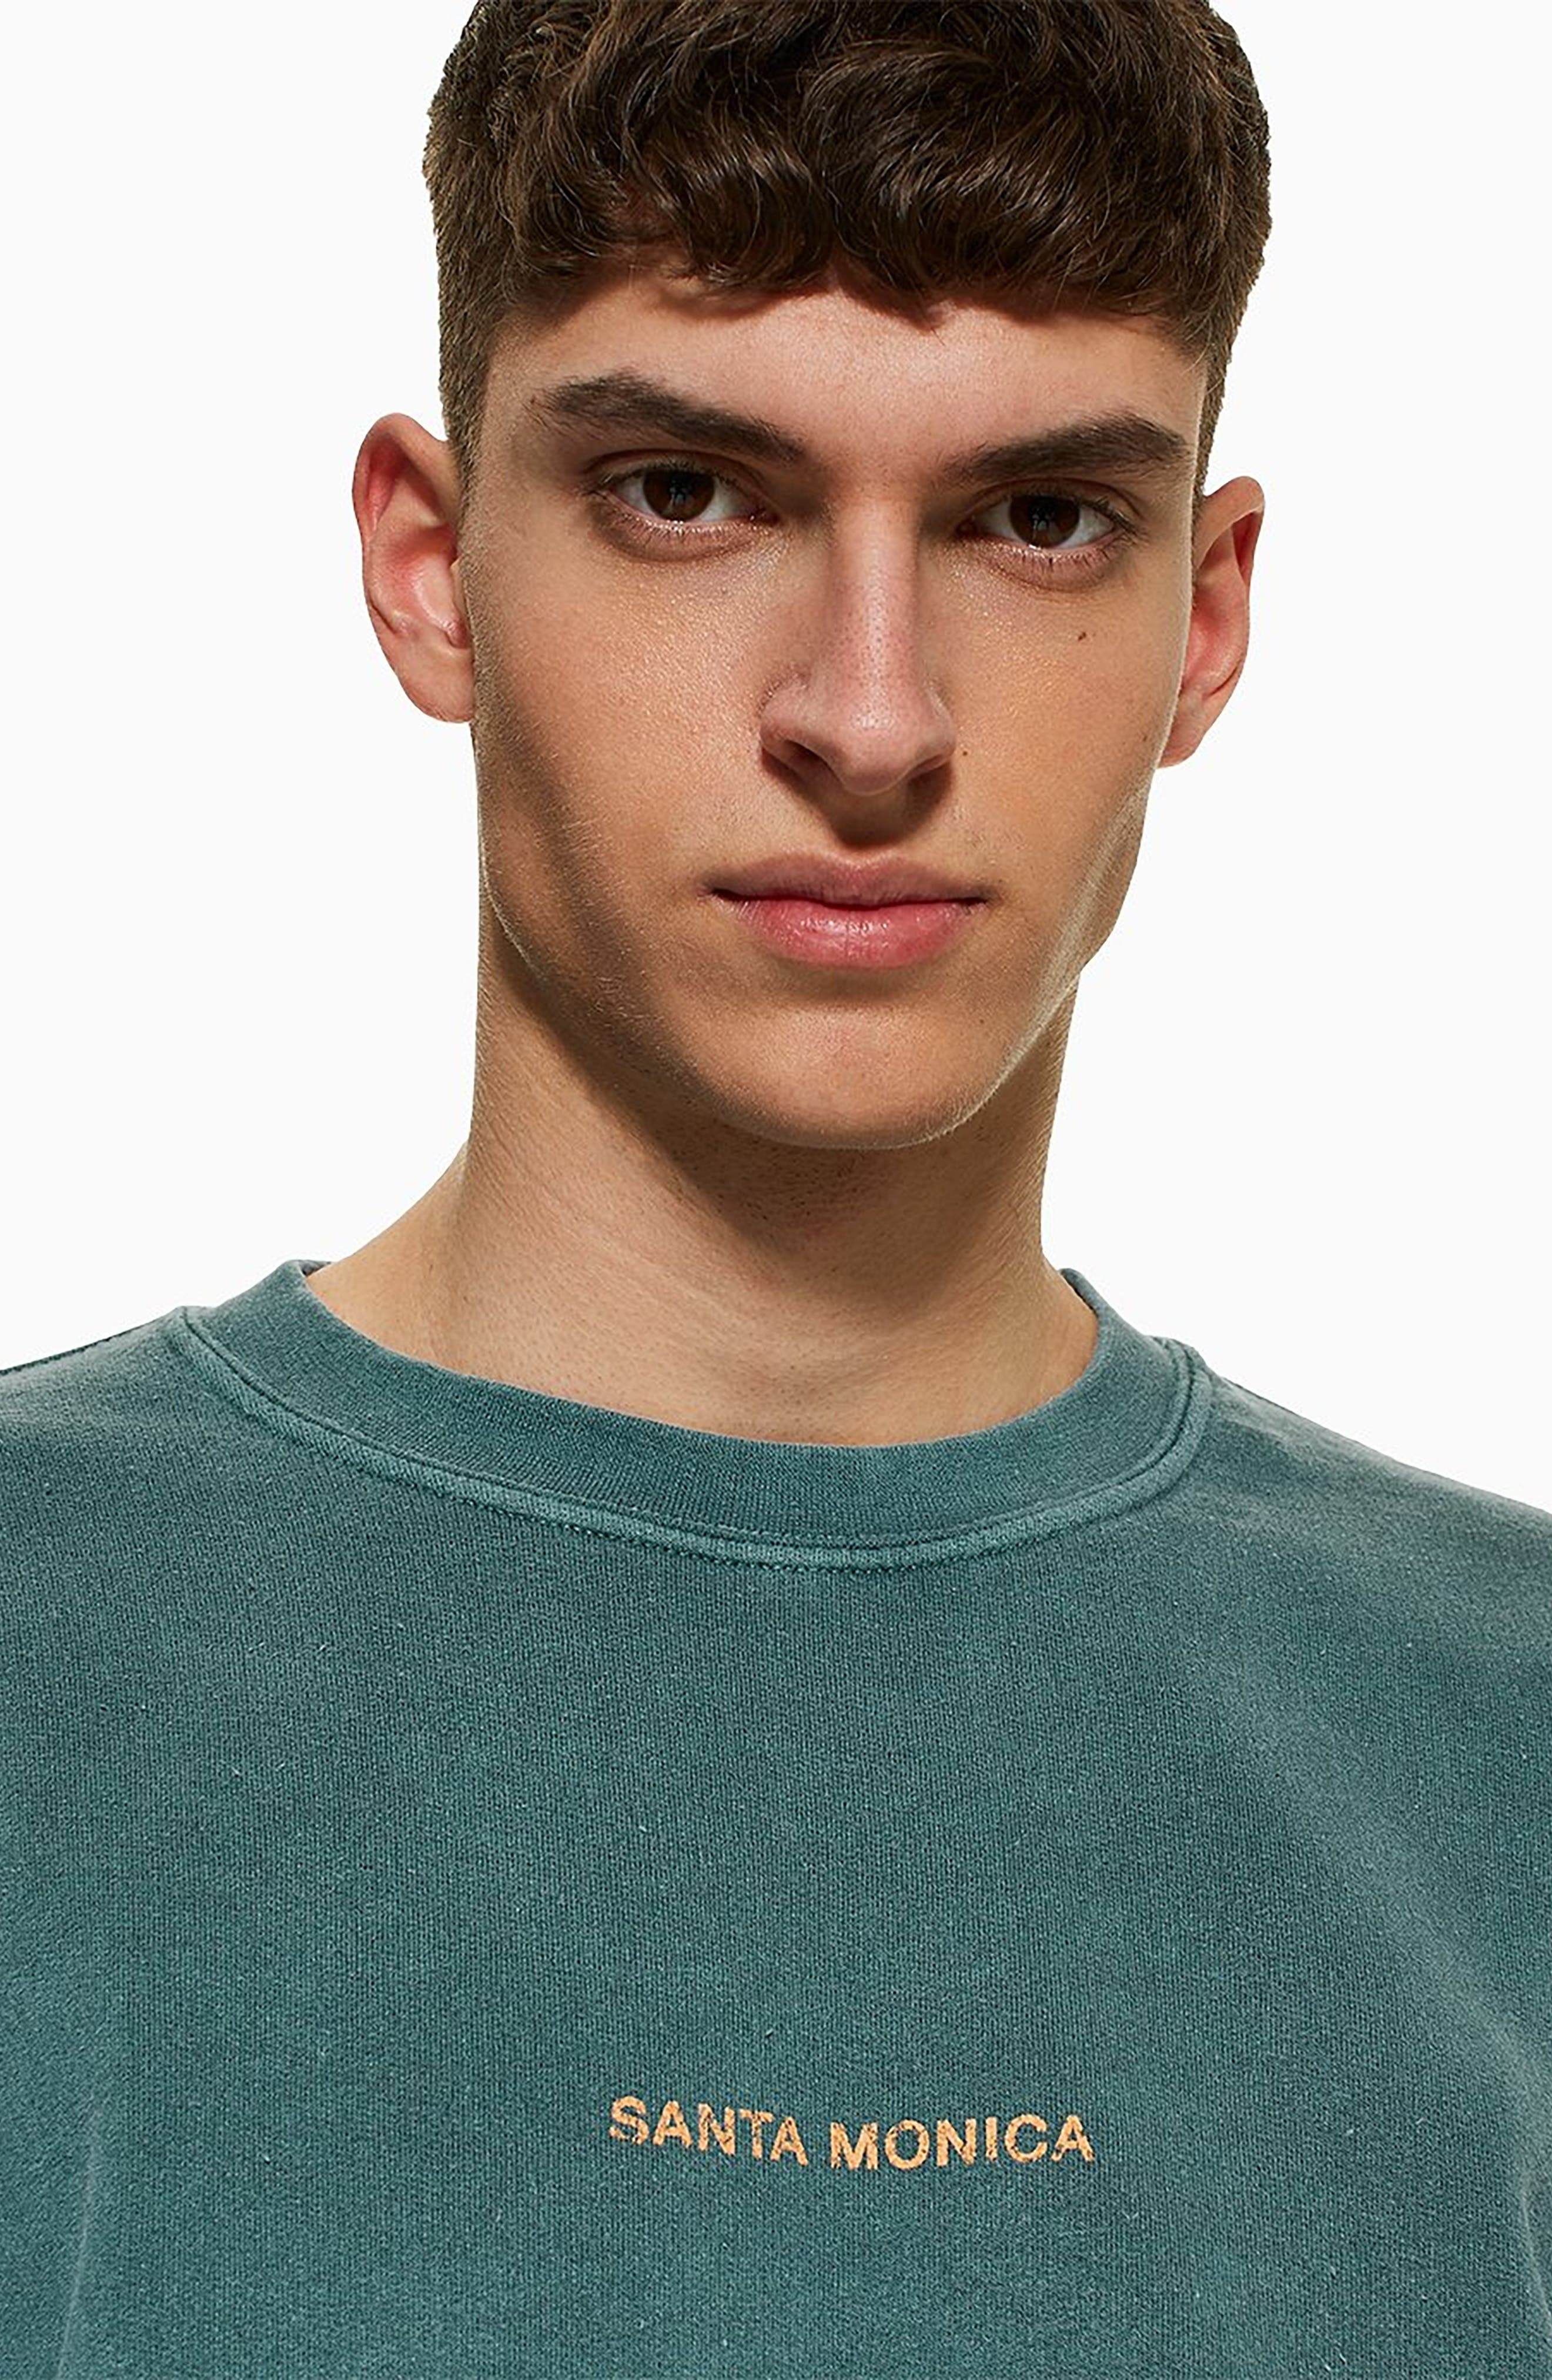 TOPMAN, Santa Monica Oversize Sweatshirt, Alternate thumbnail 4, color, GREEN